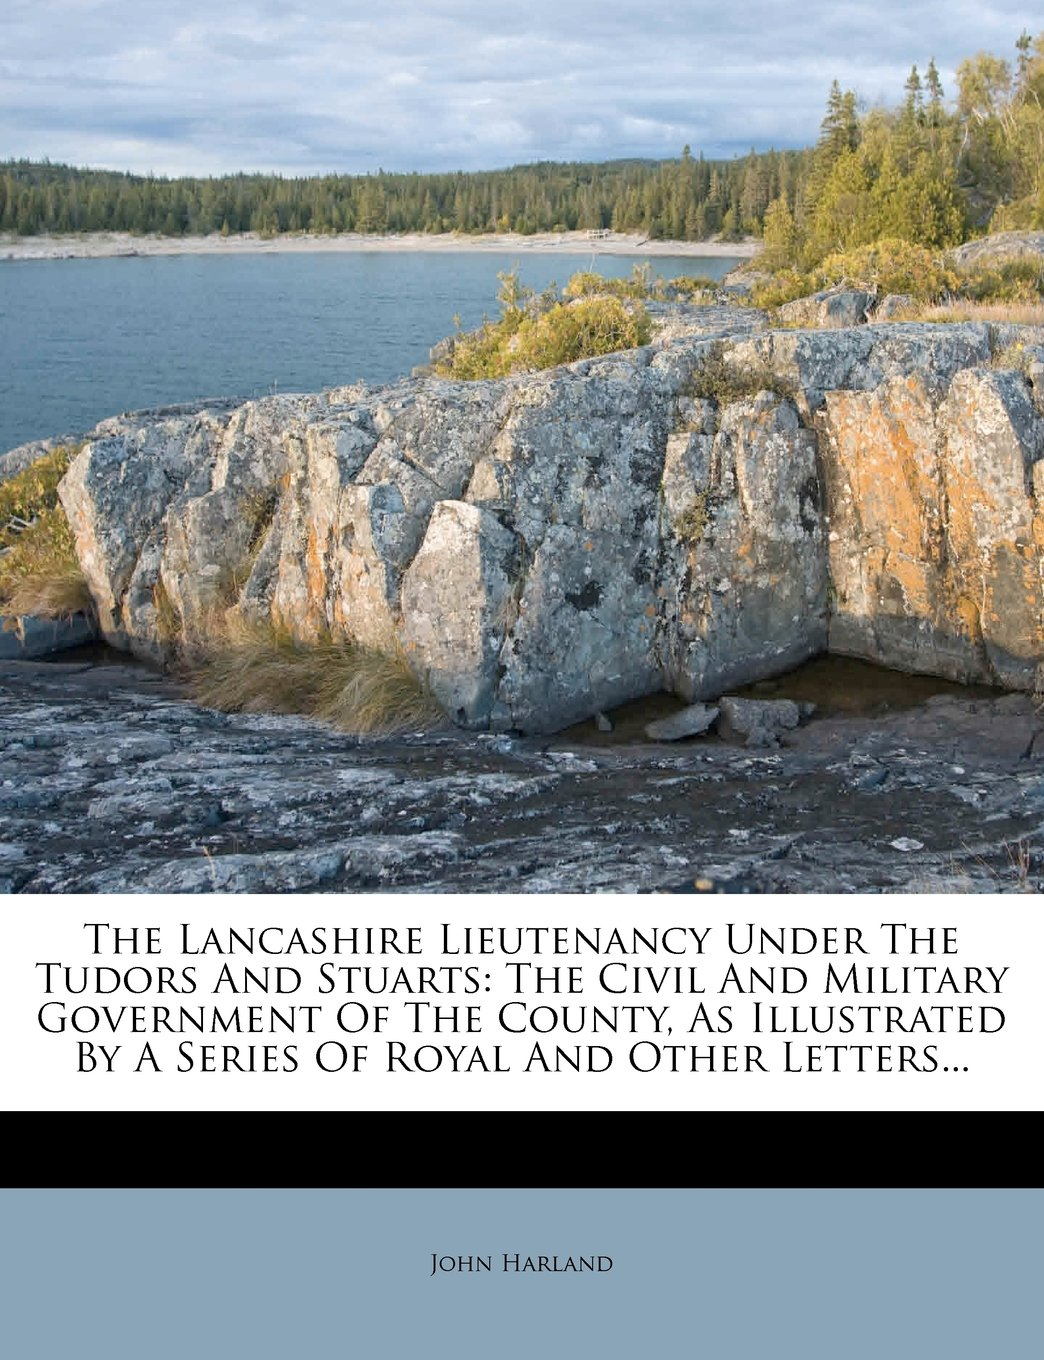 Read Online The Lancashire Lieutenancy Under The Tudors And Stuarts: The Civil And Military Government Of The County, As Illustrated By A Series Of Royal And Other Letters... pdf epub